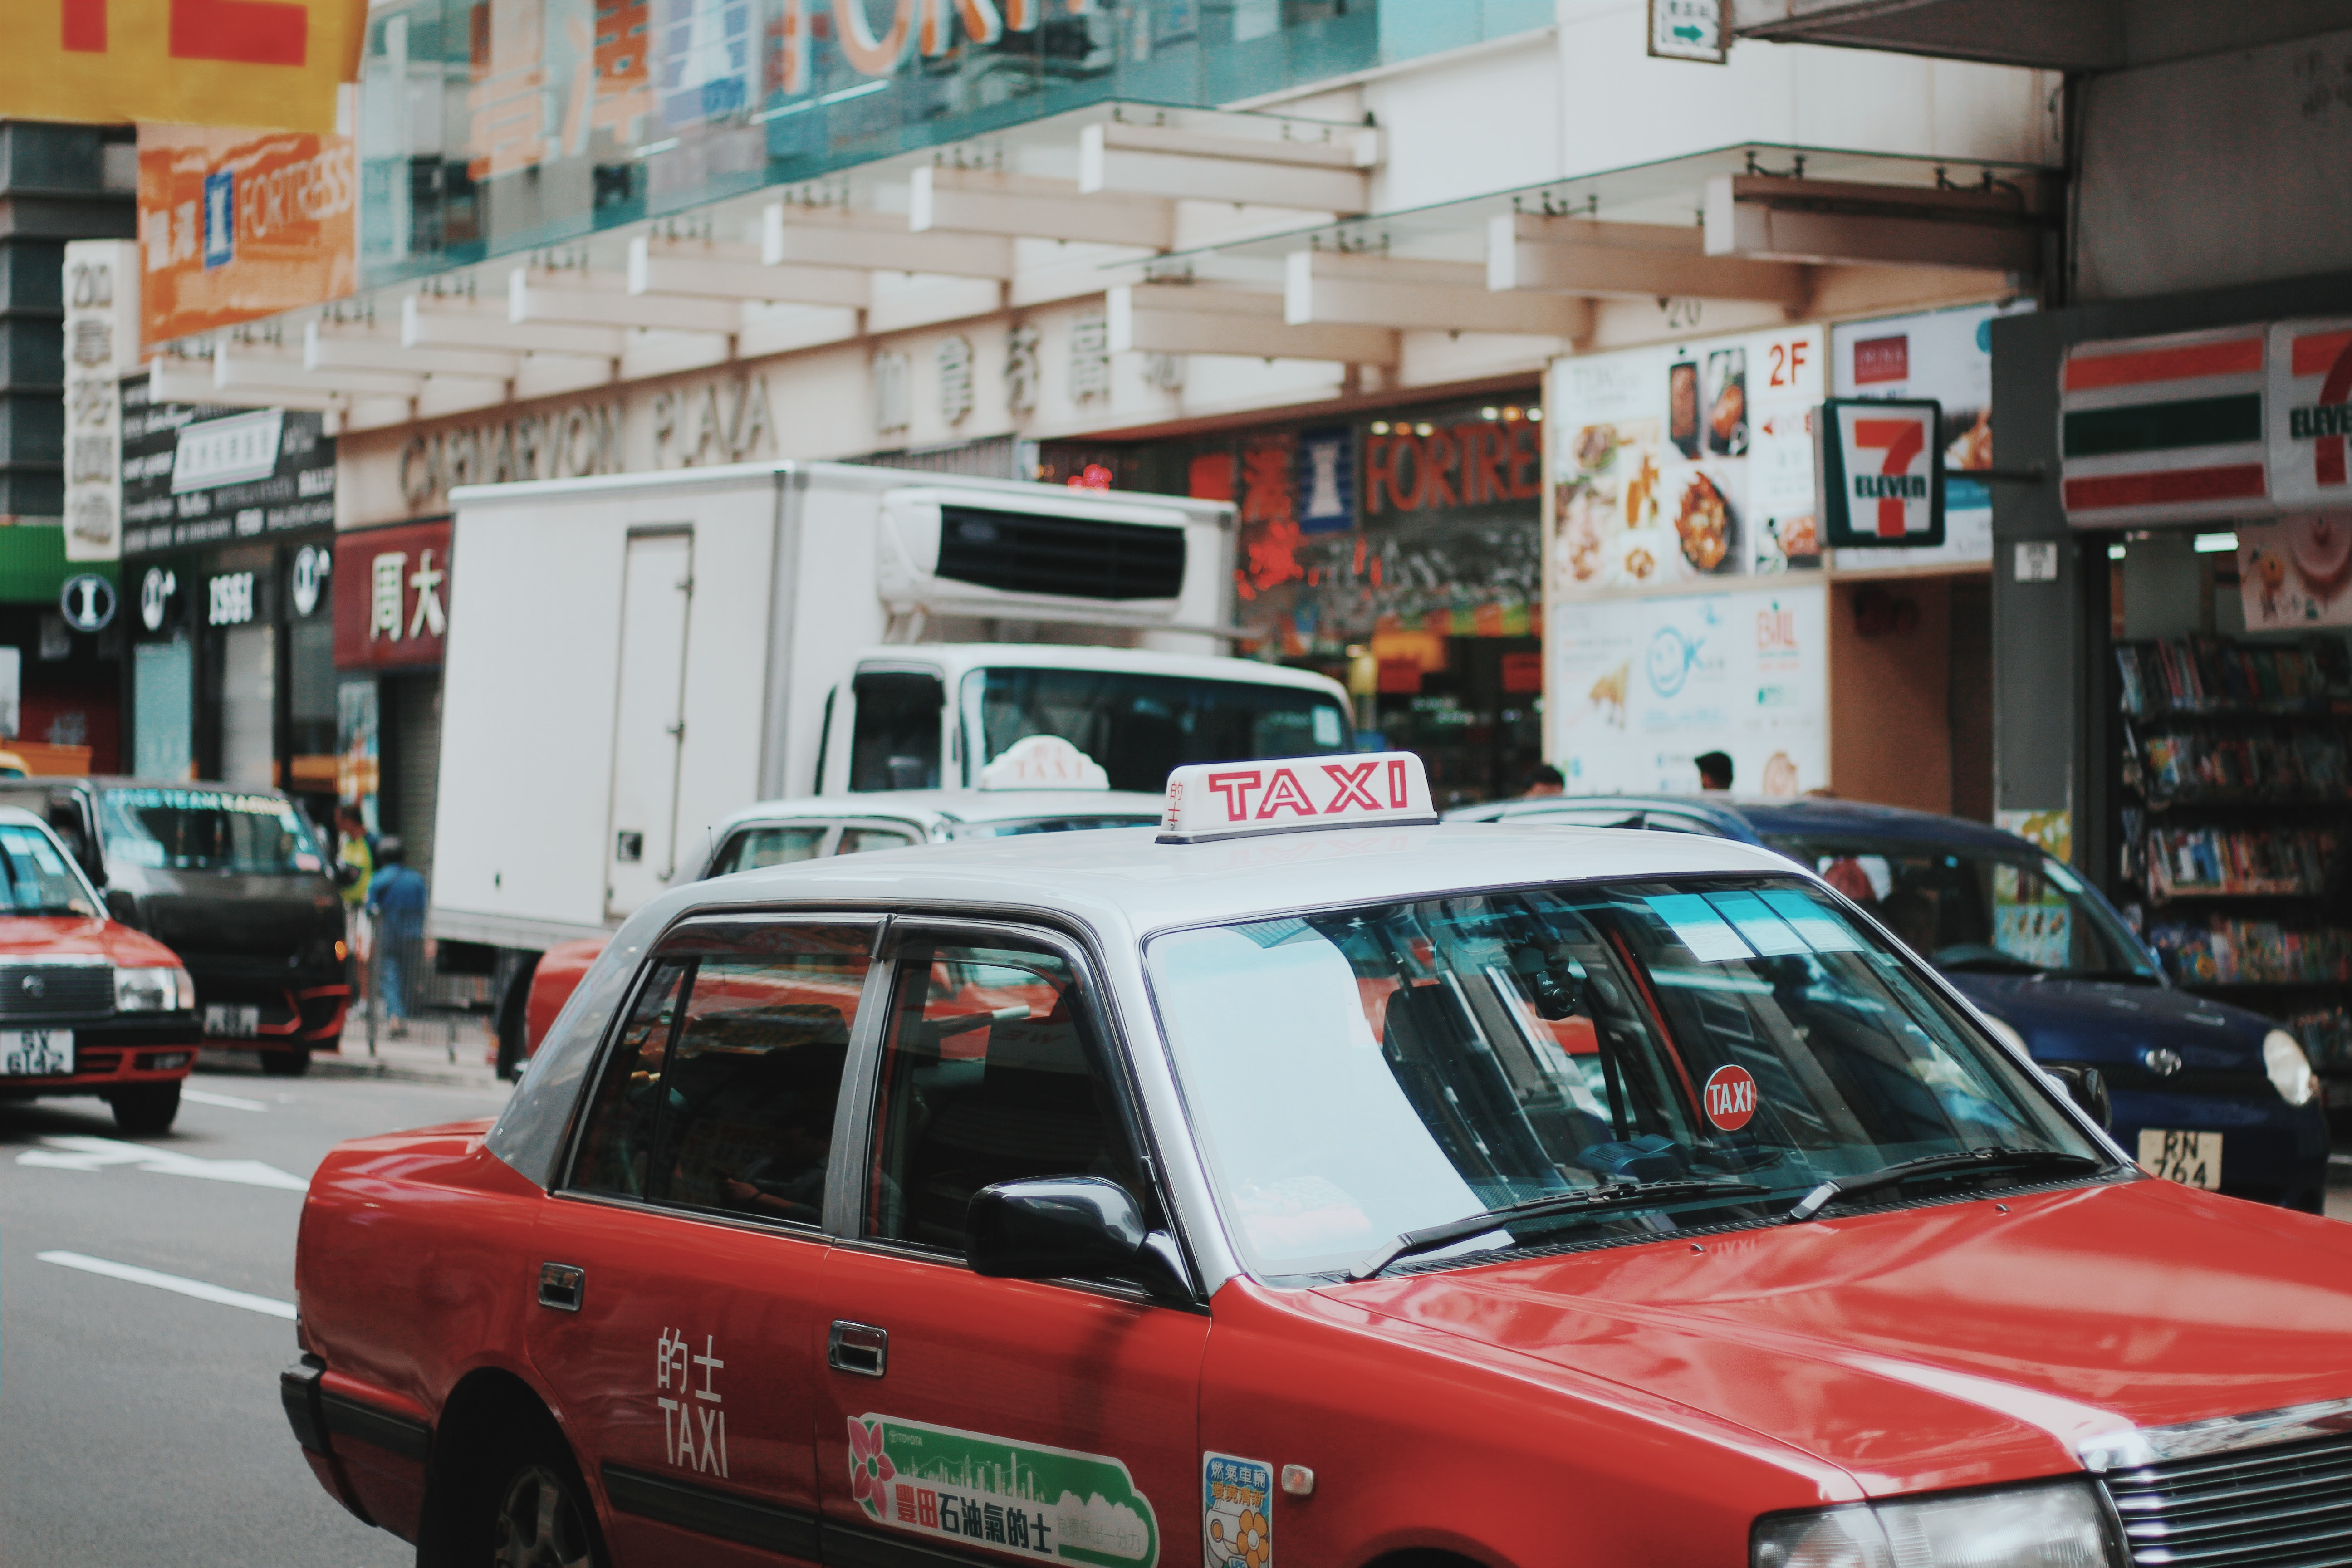 Red and white taxi car in a busy urban street in Tsim Sha Tsui